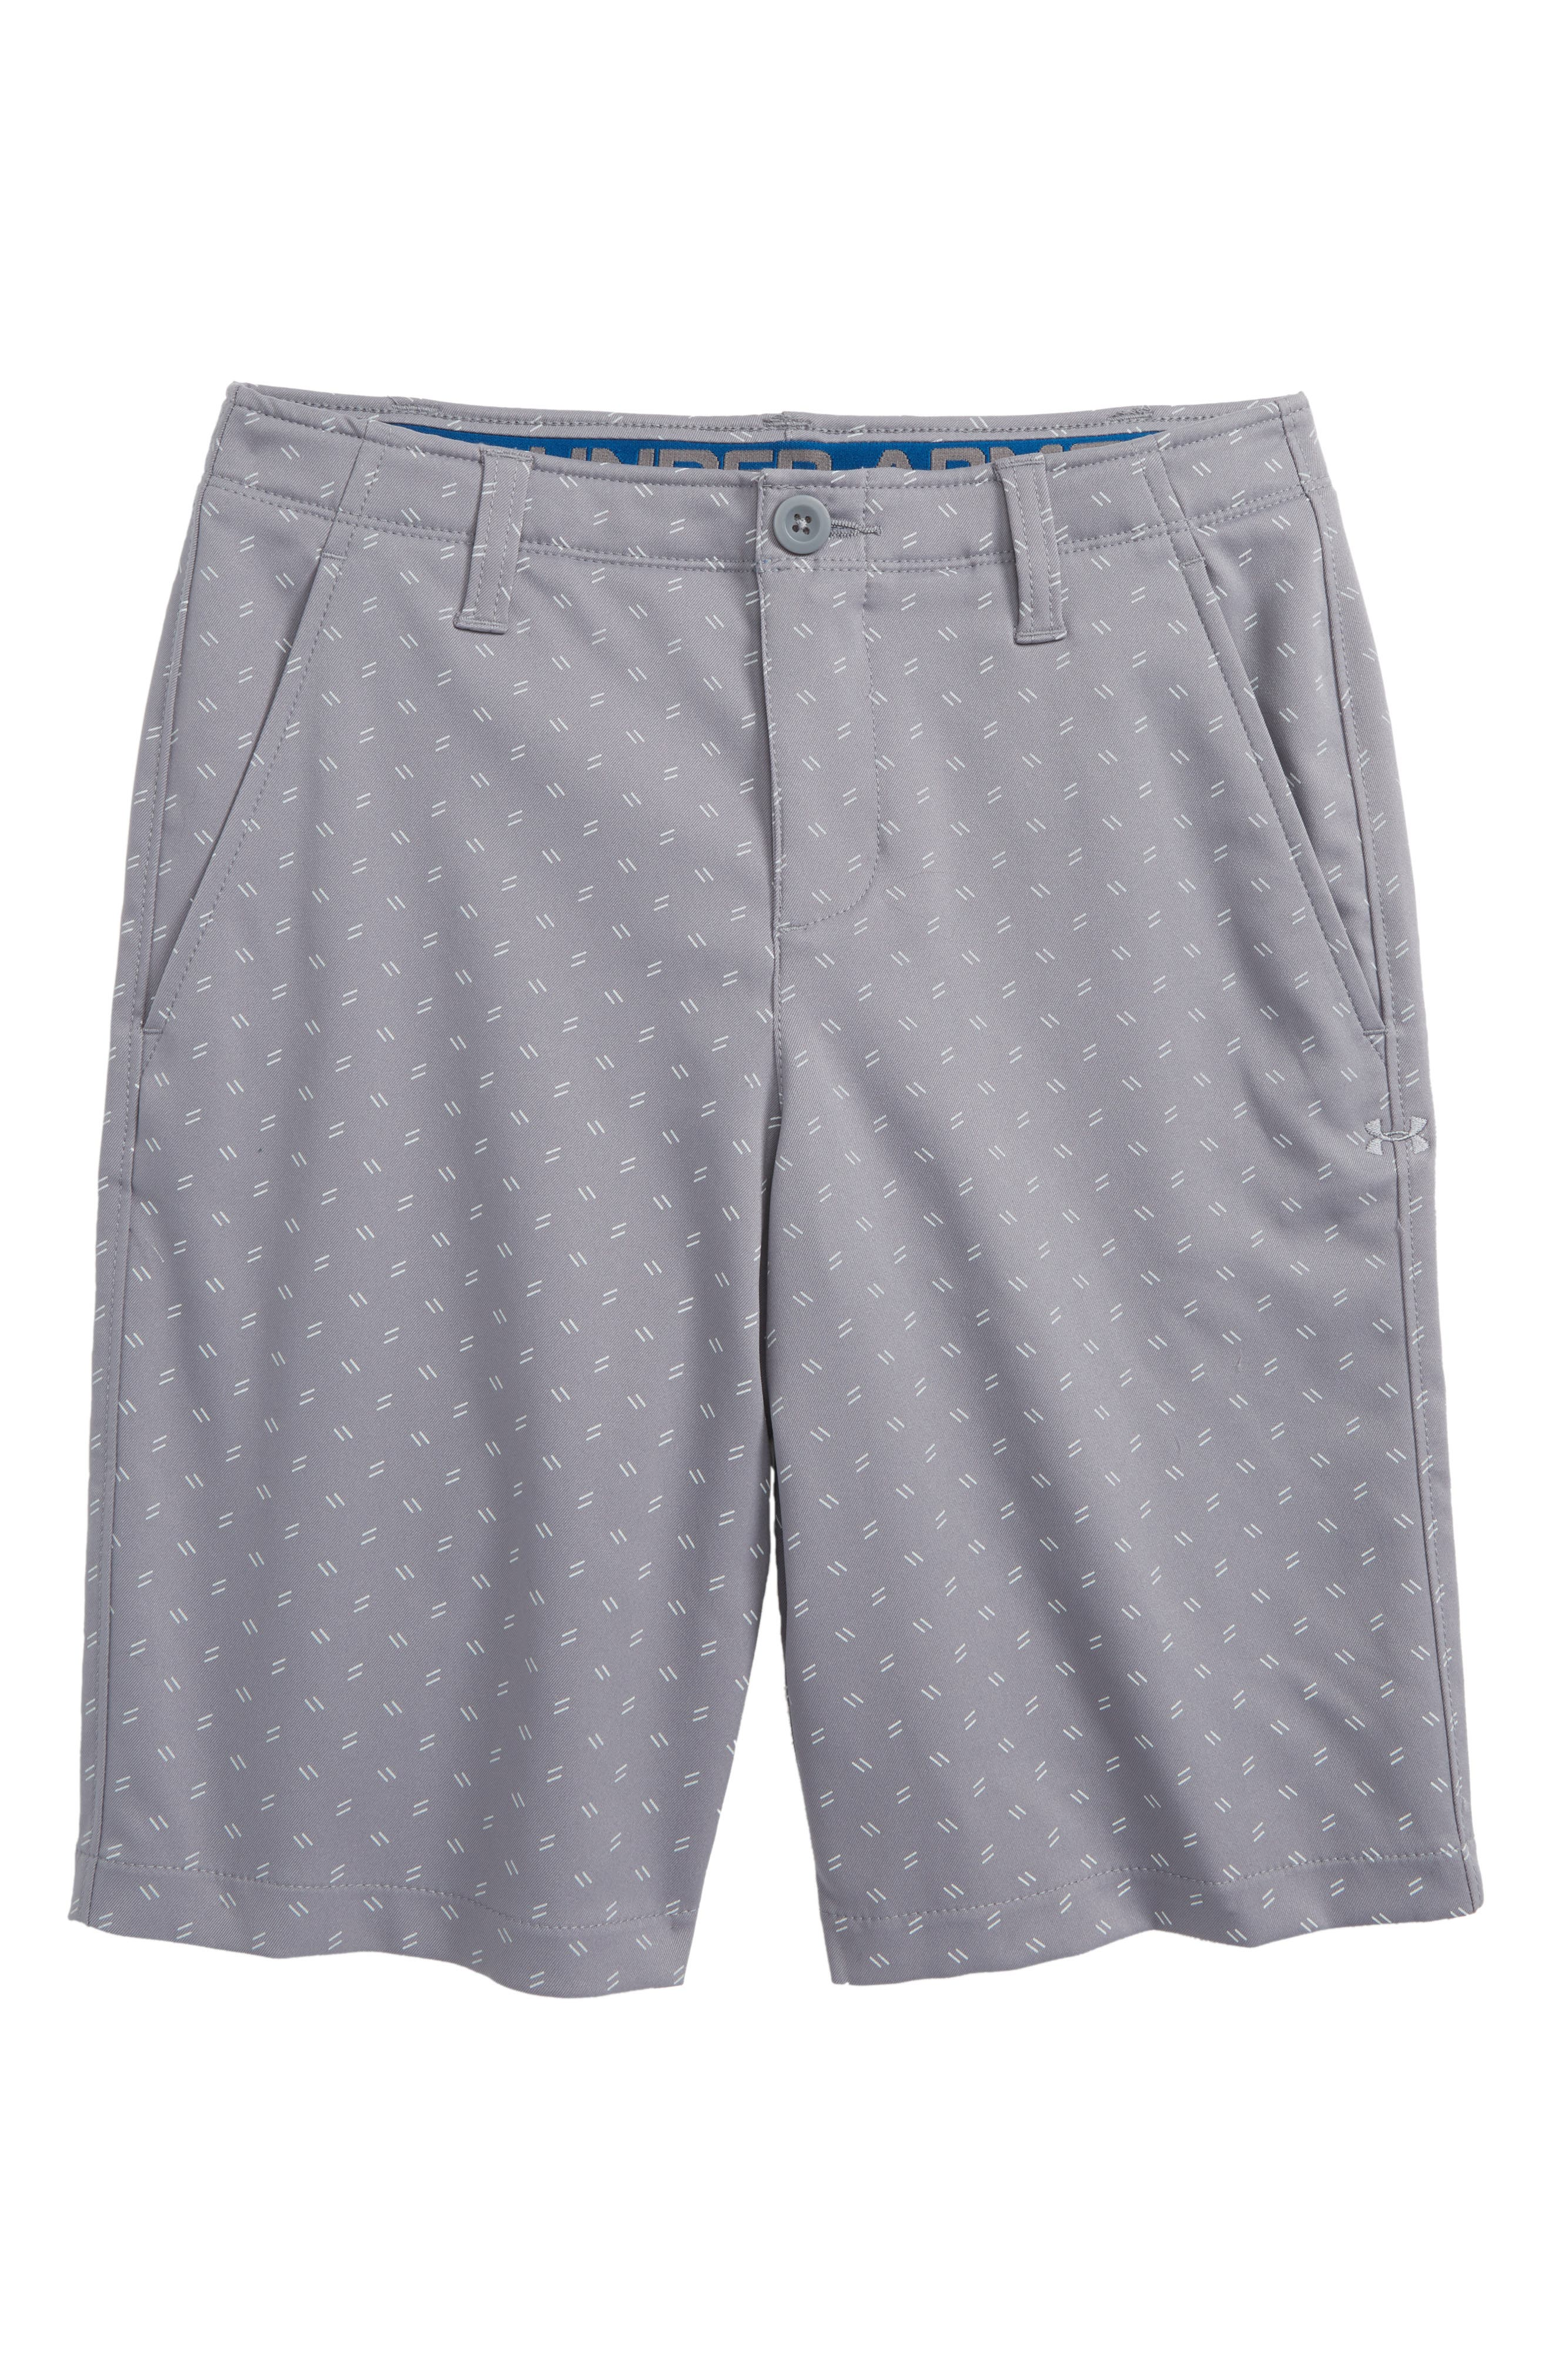 Match Play Golf Shorts,                         Main,                         color,